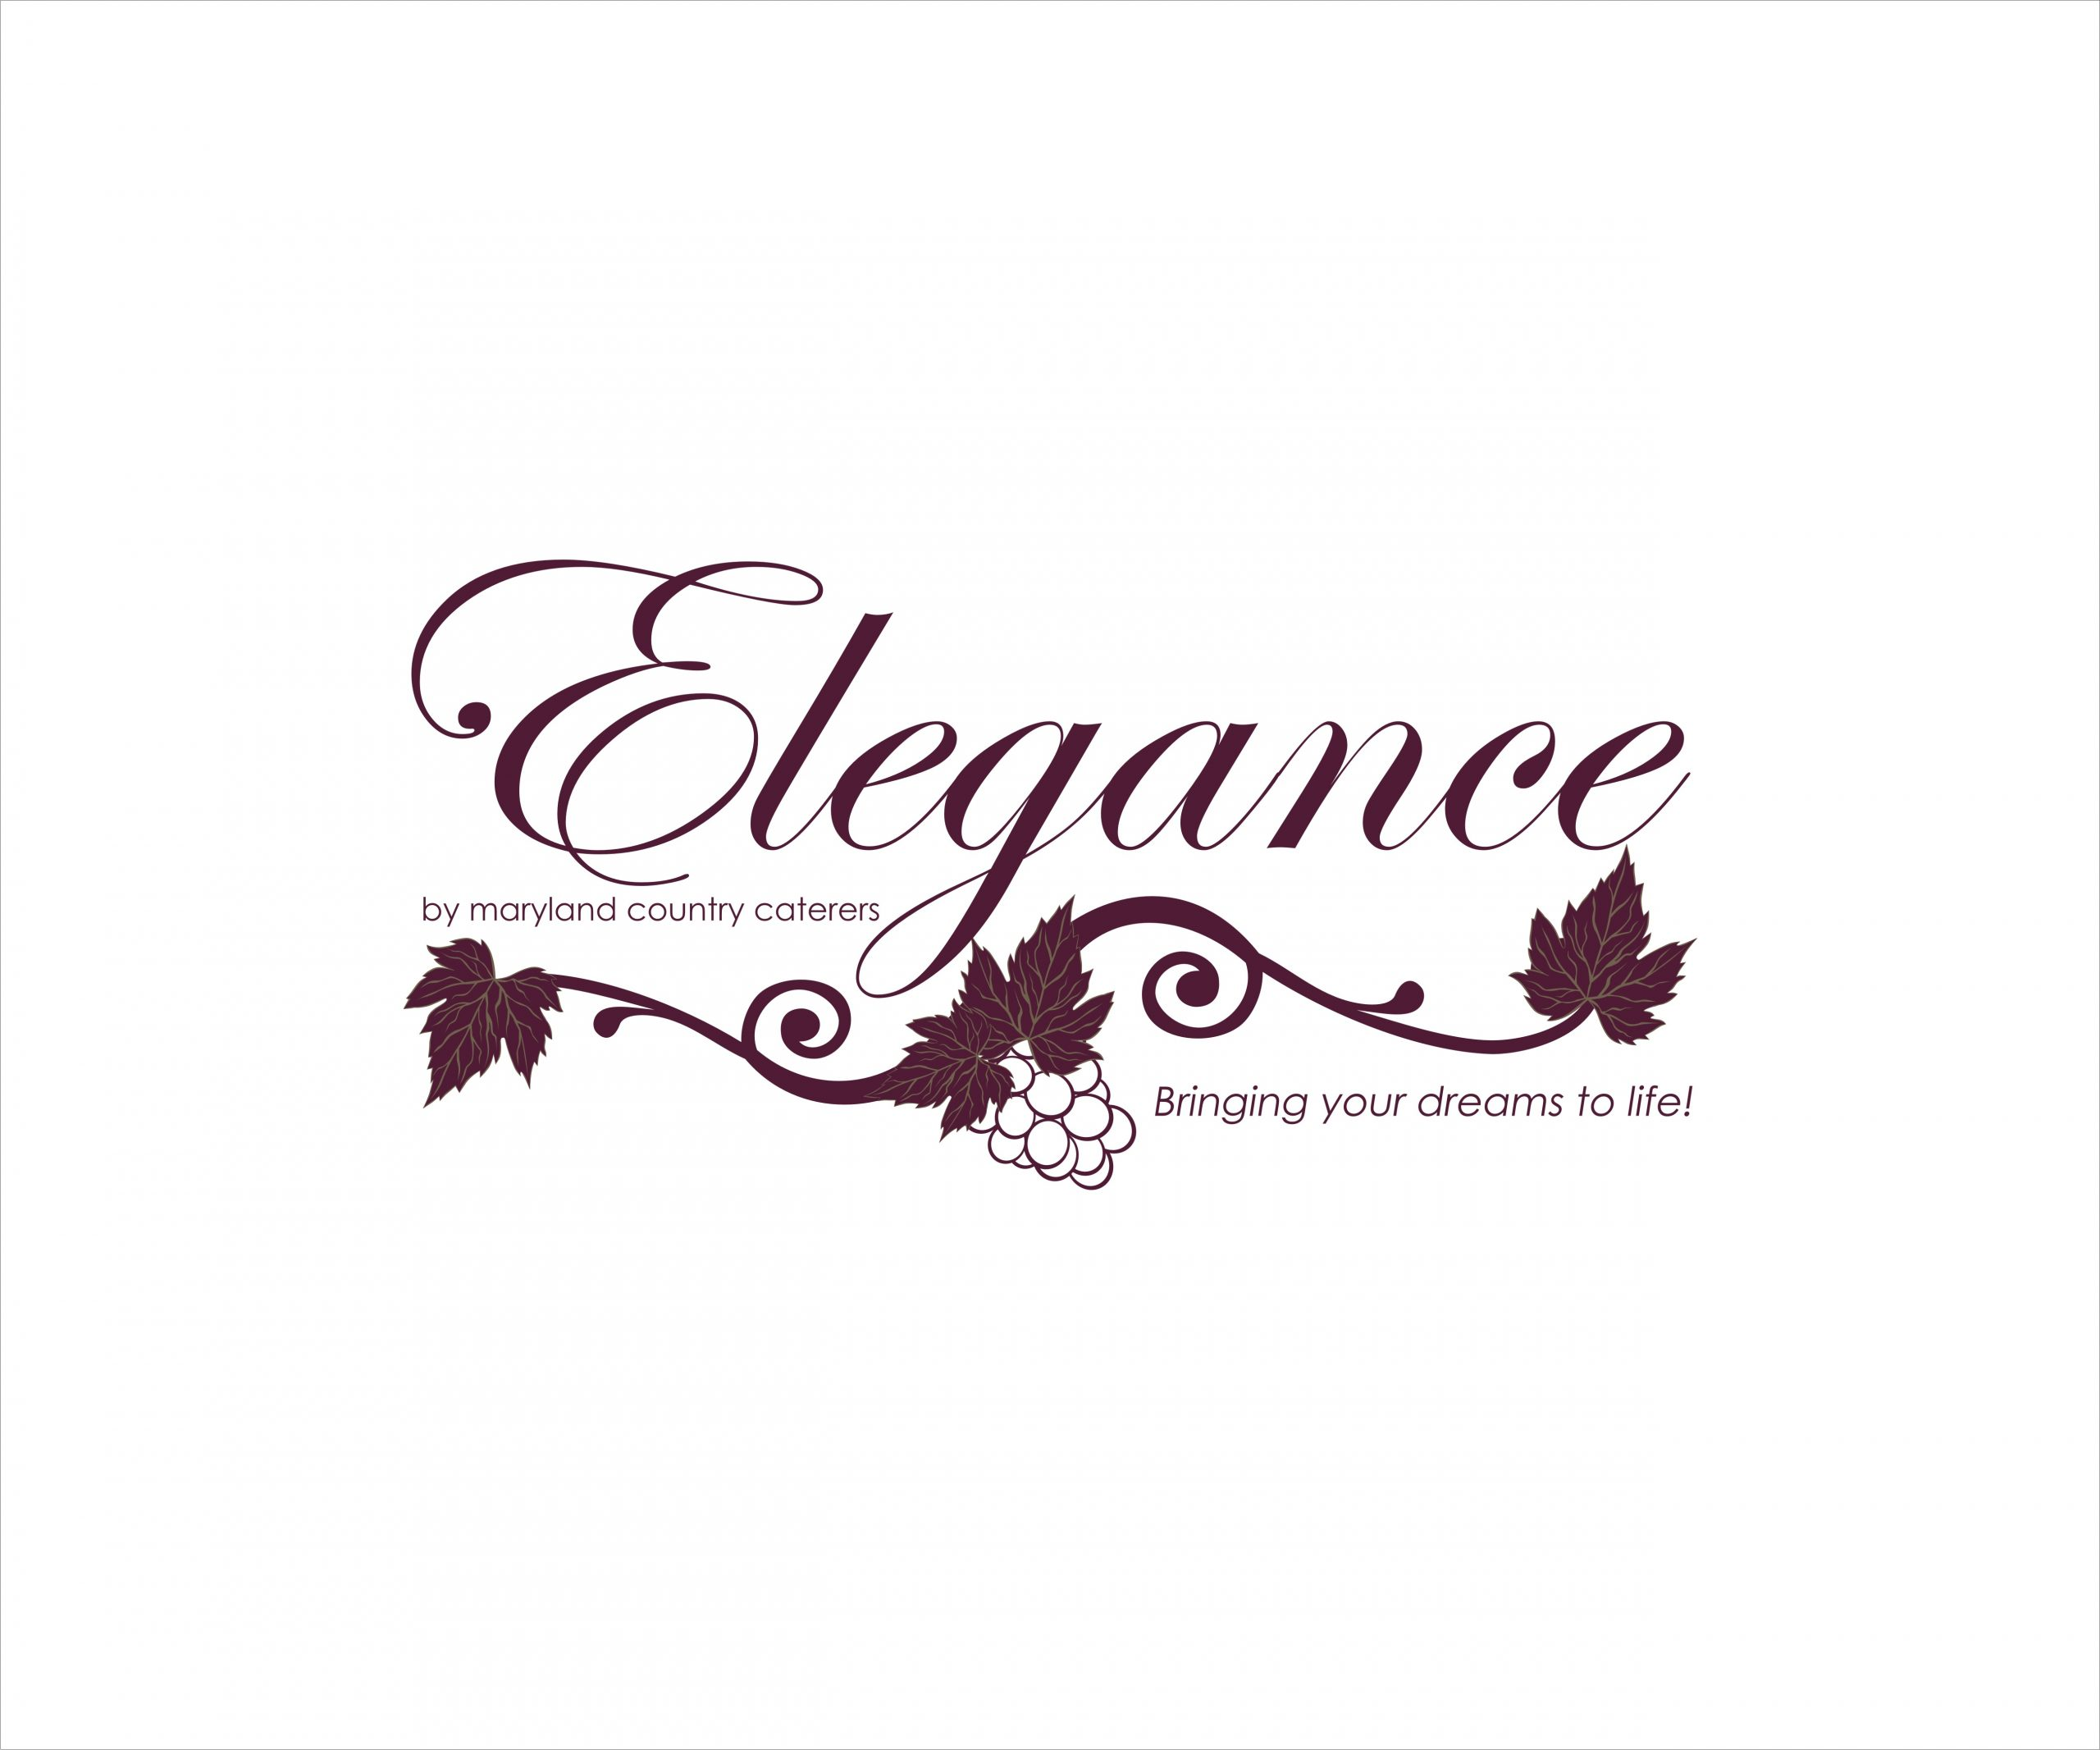 Elegance by Maryland Country Caterers logo